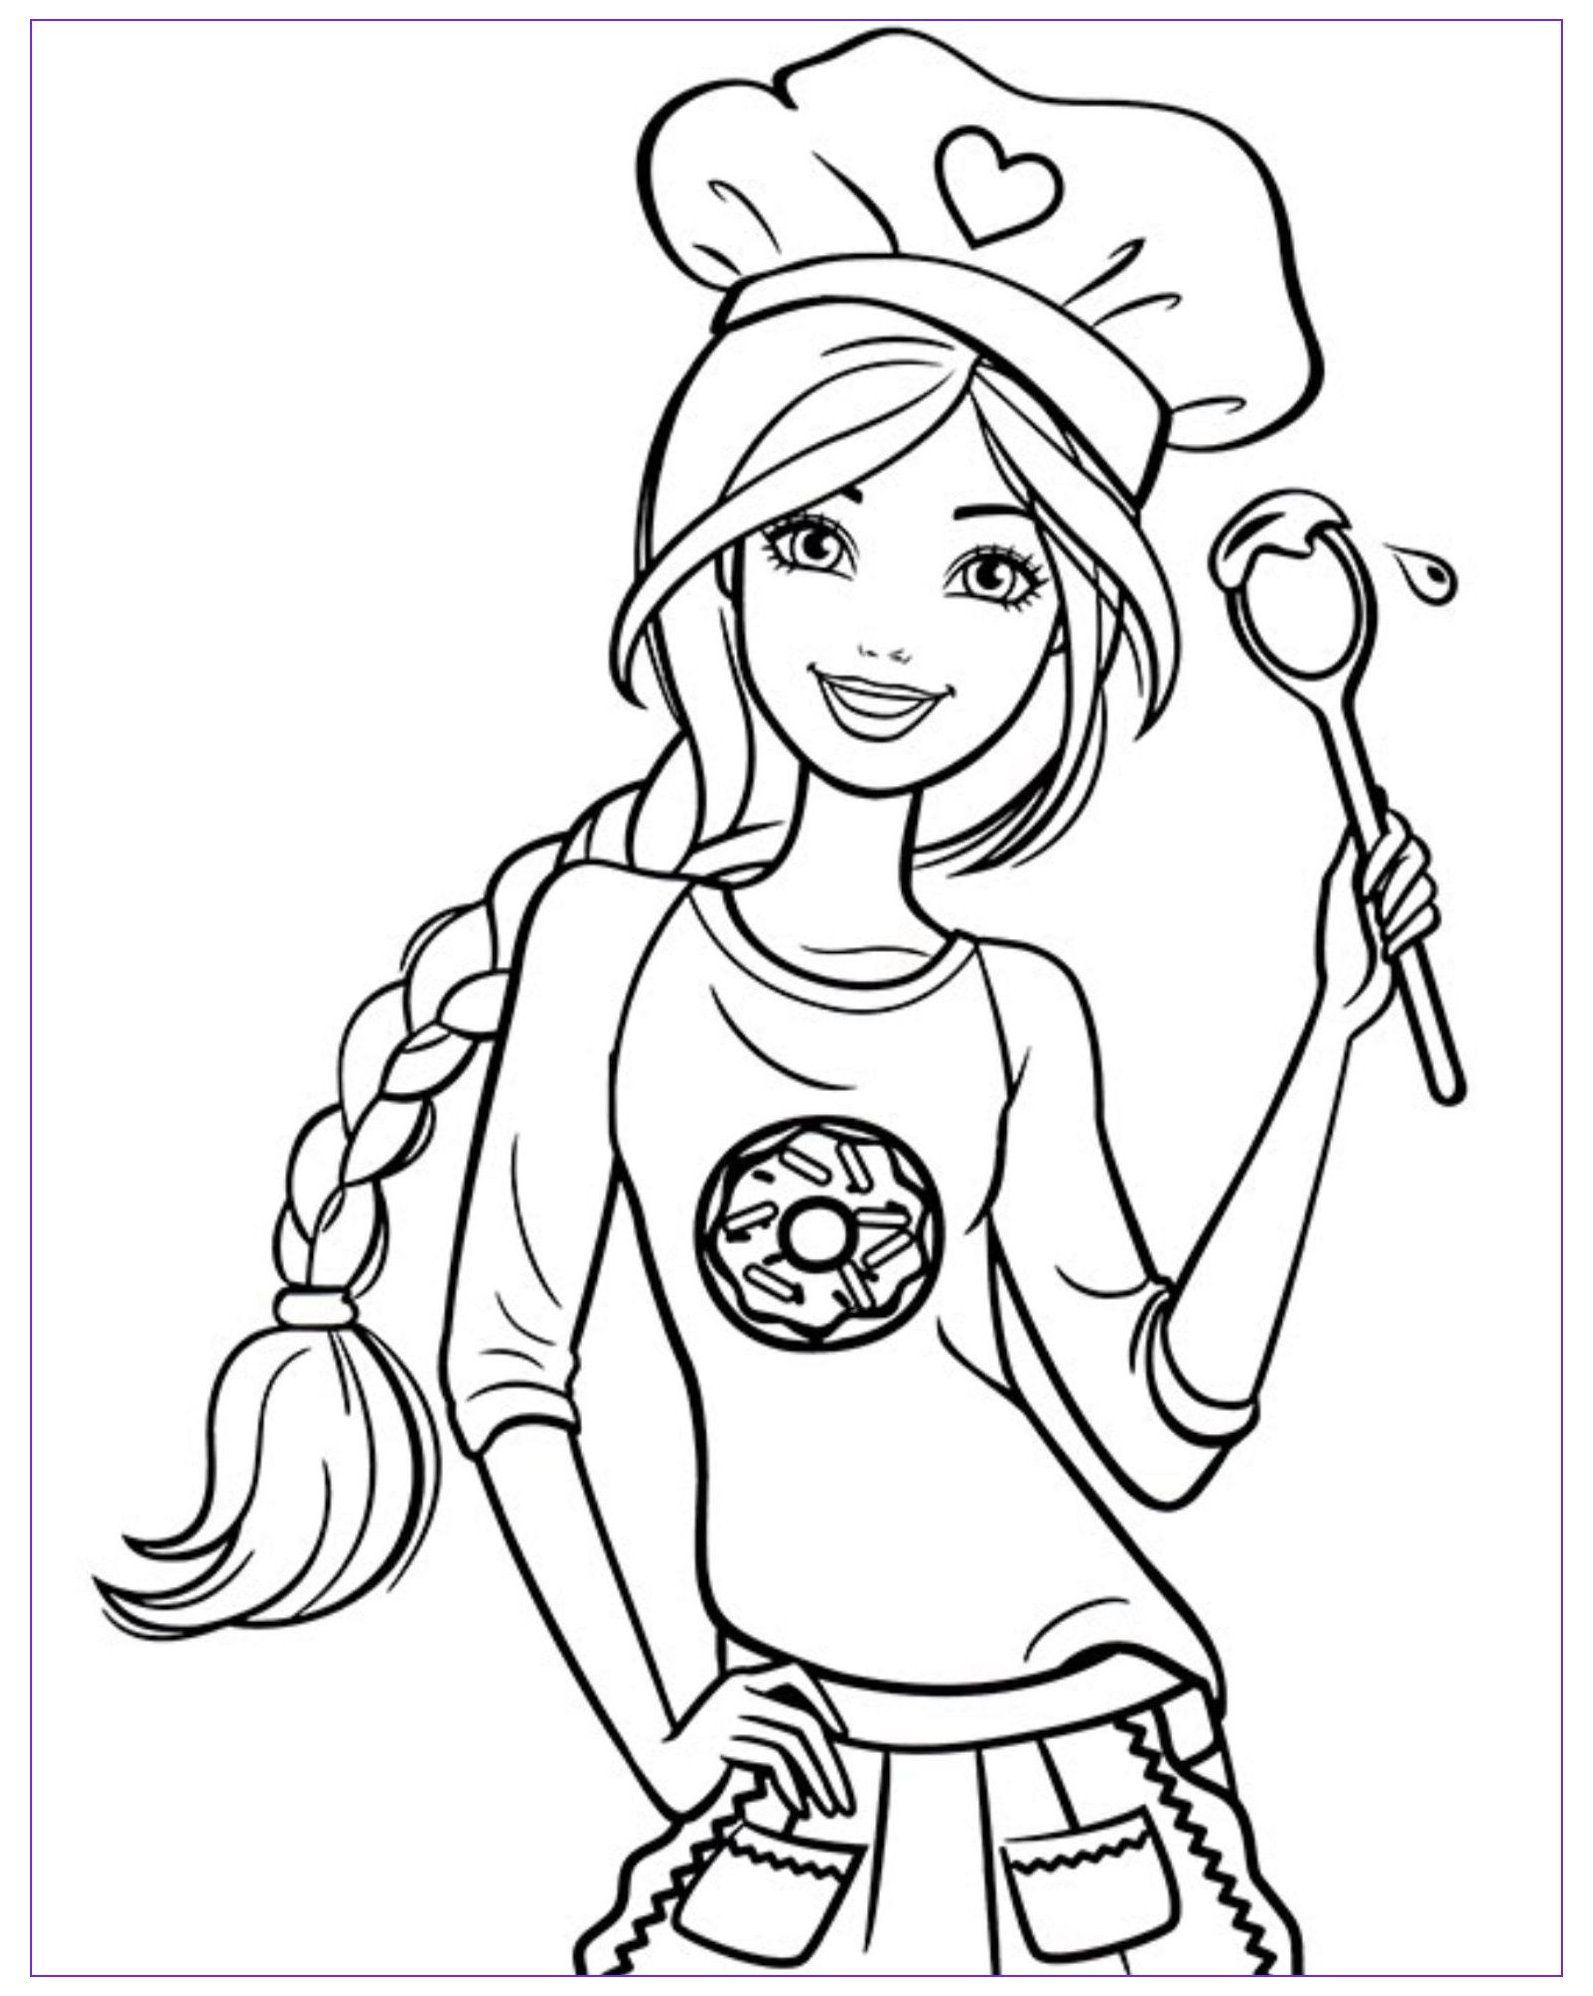 45 Luxury Images Of Free Printable Barbie Coloring Pages Barbie Coloring Pages Barbiecolo In 2021 Barbie Coloring Pages Cute Coloring Pages Princess Coloring Pages